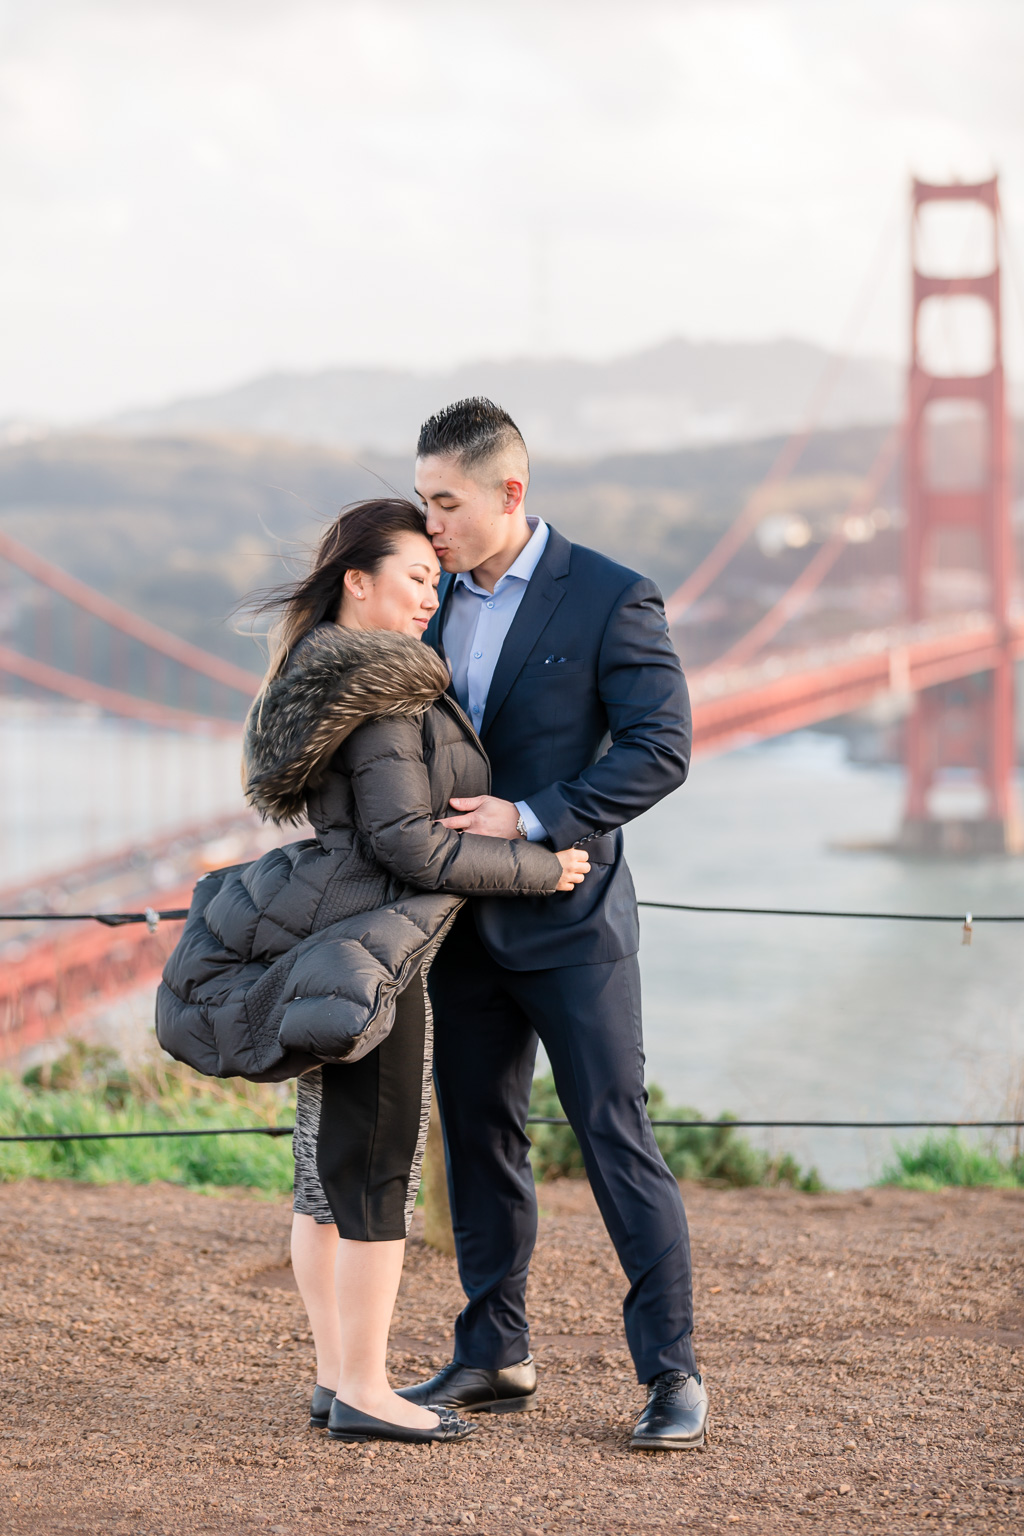 proposed and engaged right in front of the golden gate bridge